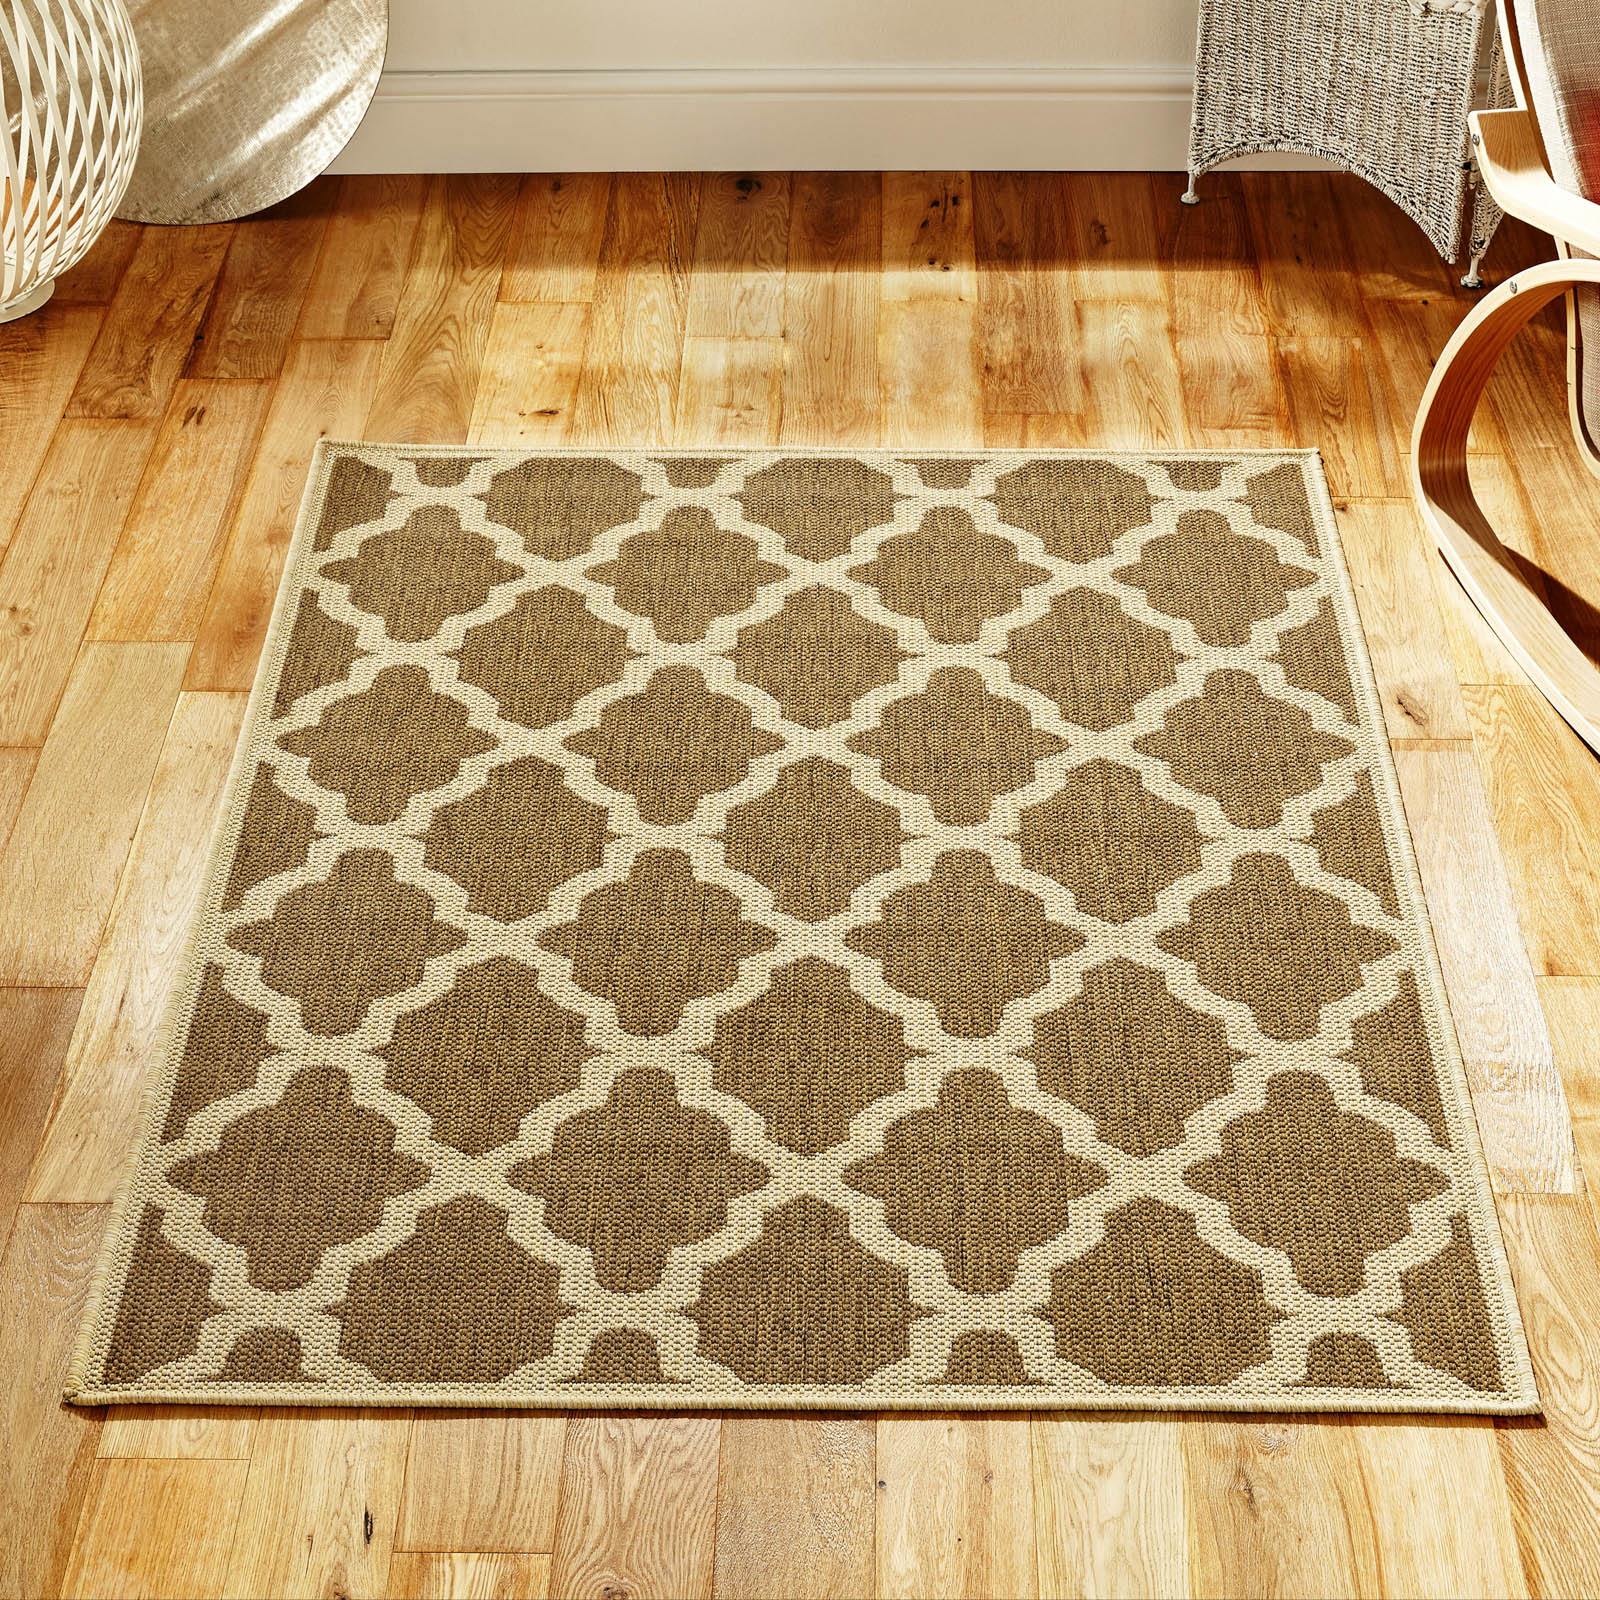 Trellis Rug in Natural 60x110cm